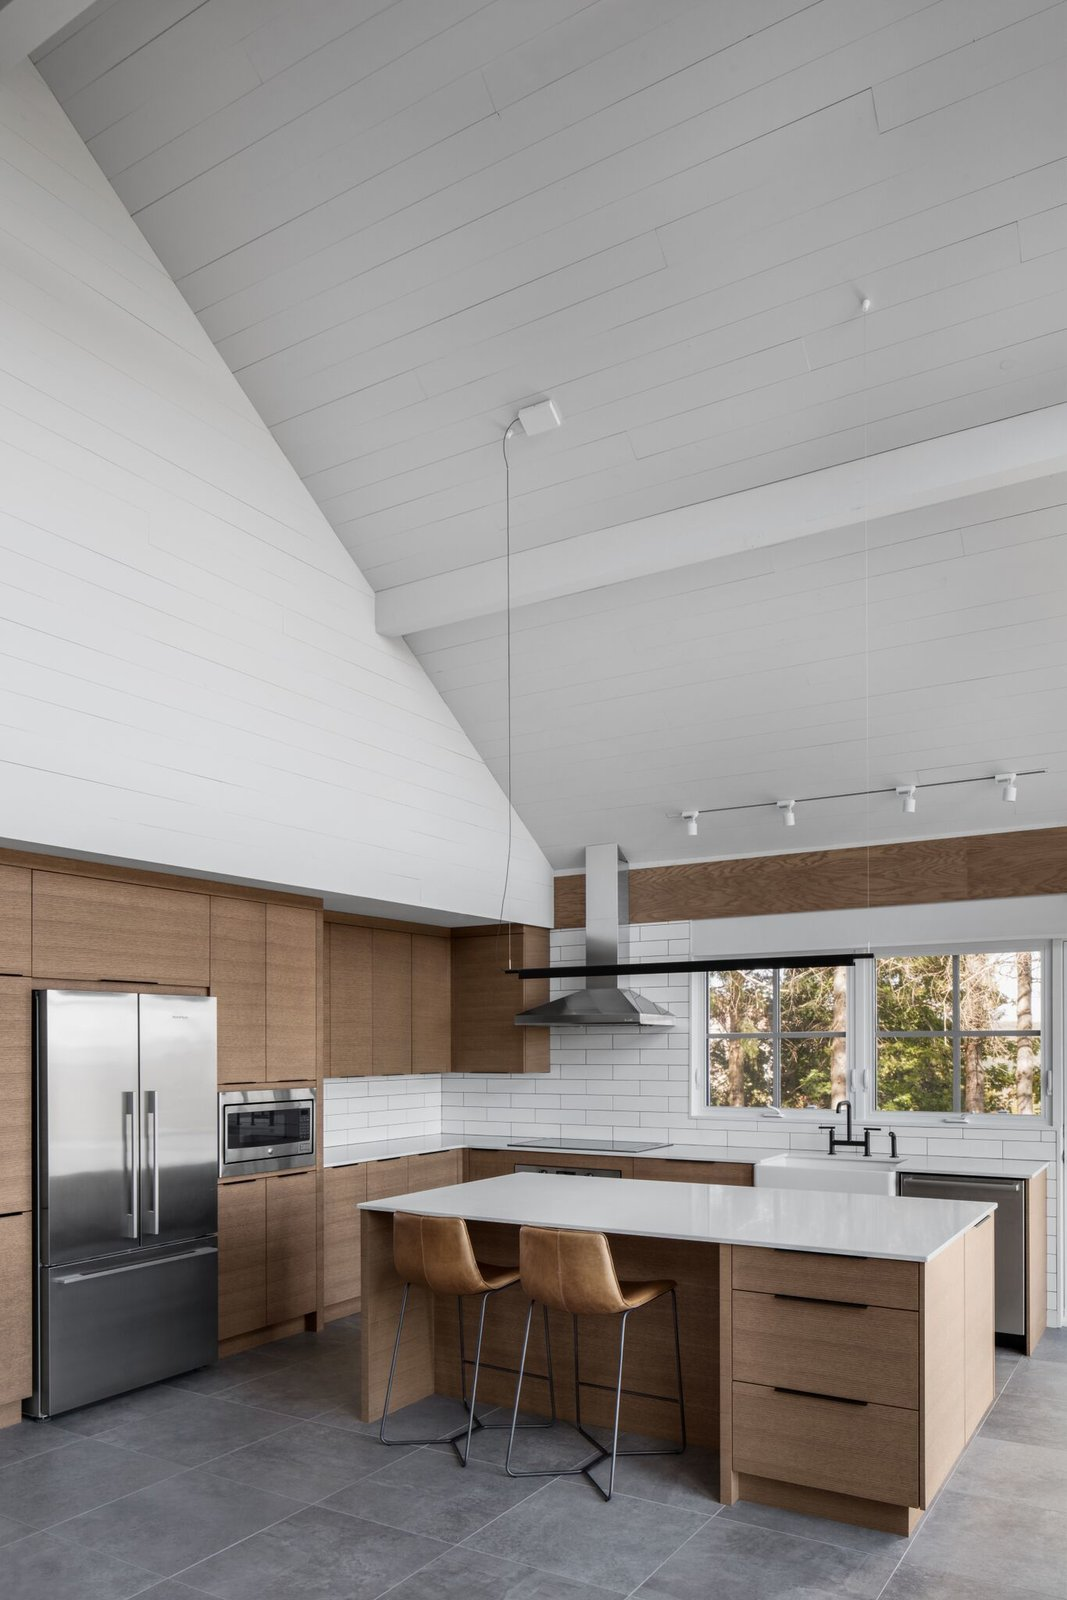 Kitchen, Pendant, Cooktops, Refrigerator, Range Hood, Wood, Vessel, Dishwasher, Wall Oven, Track, and Subway Tile The homey, open kitchen is fully equipped for cooking family meals together.  Best Kitchen Subway Tile Wall Oven Wood Photos from A 1960s Canadian Ski House Is Rebuilt Into a Gorgeous Abode